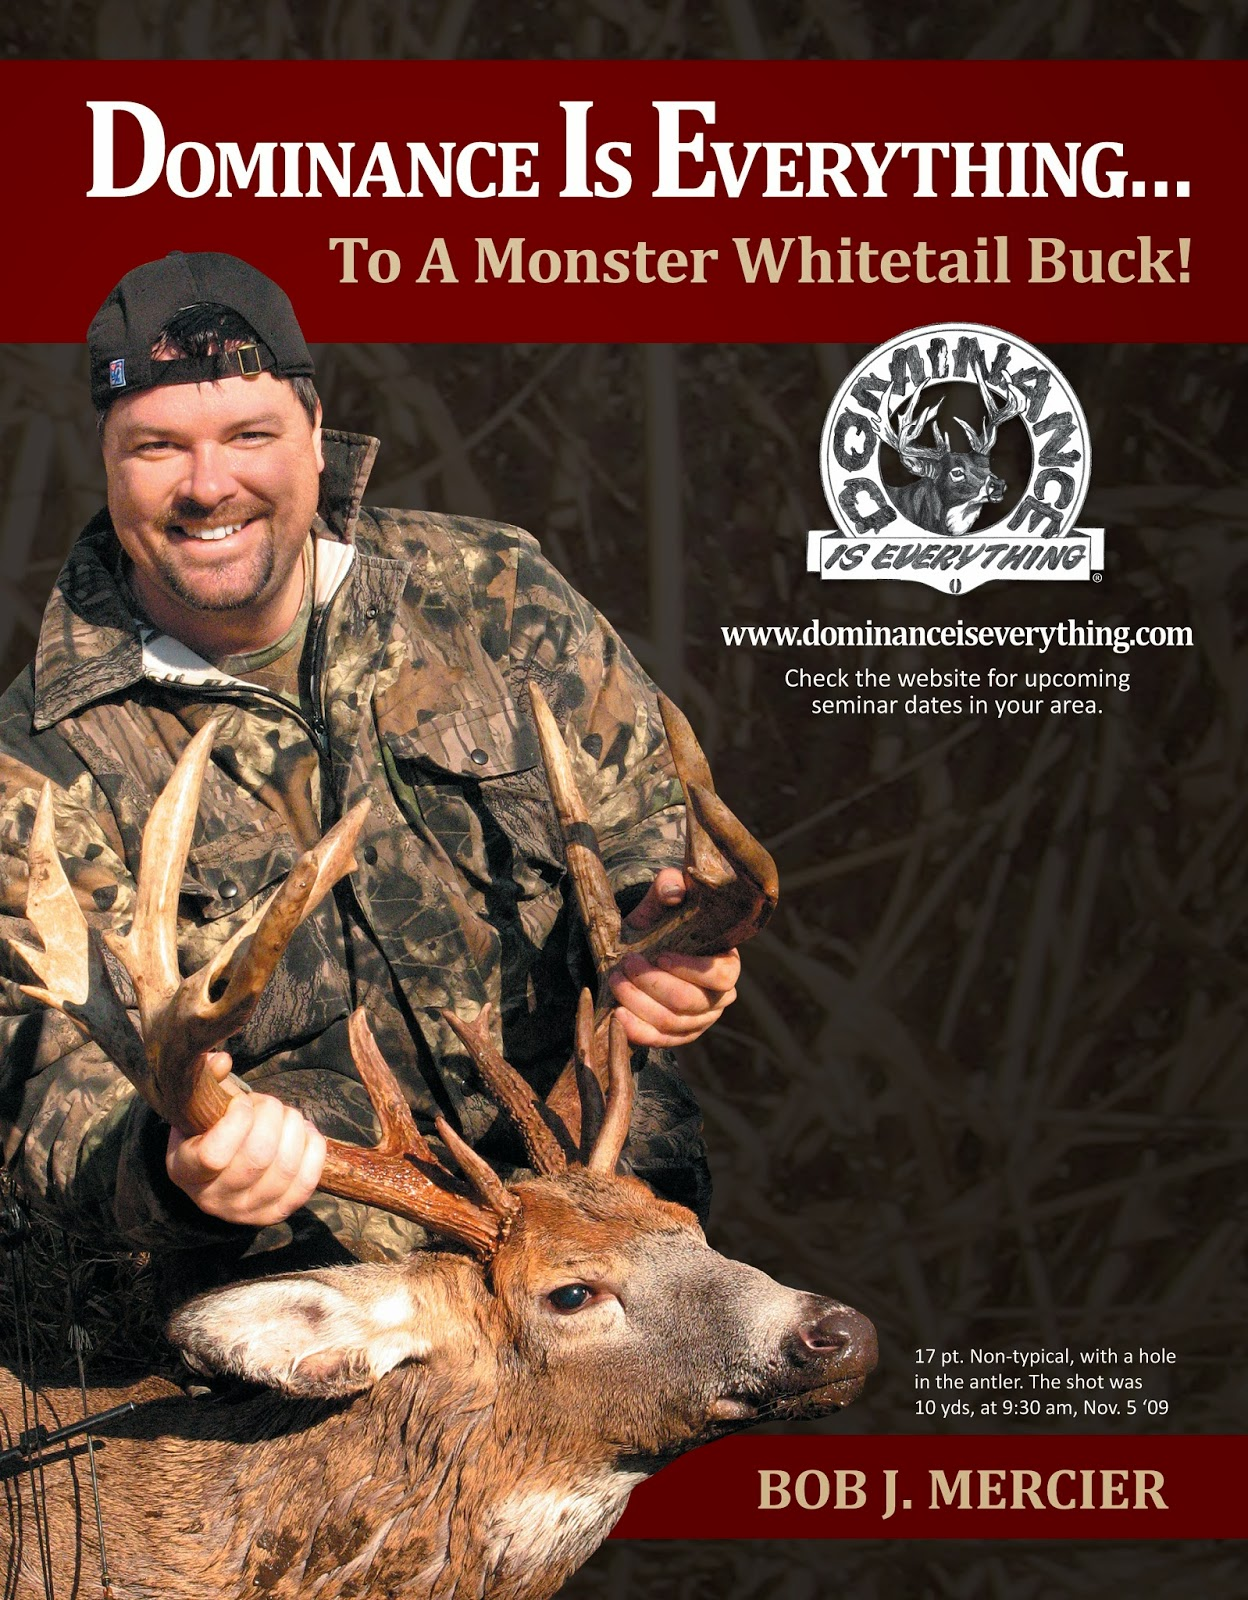 Learn about whitetail deer herds, and hunting kings